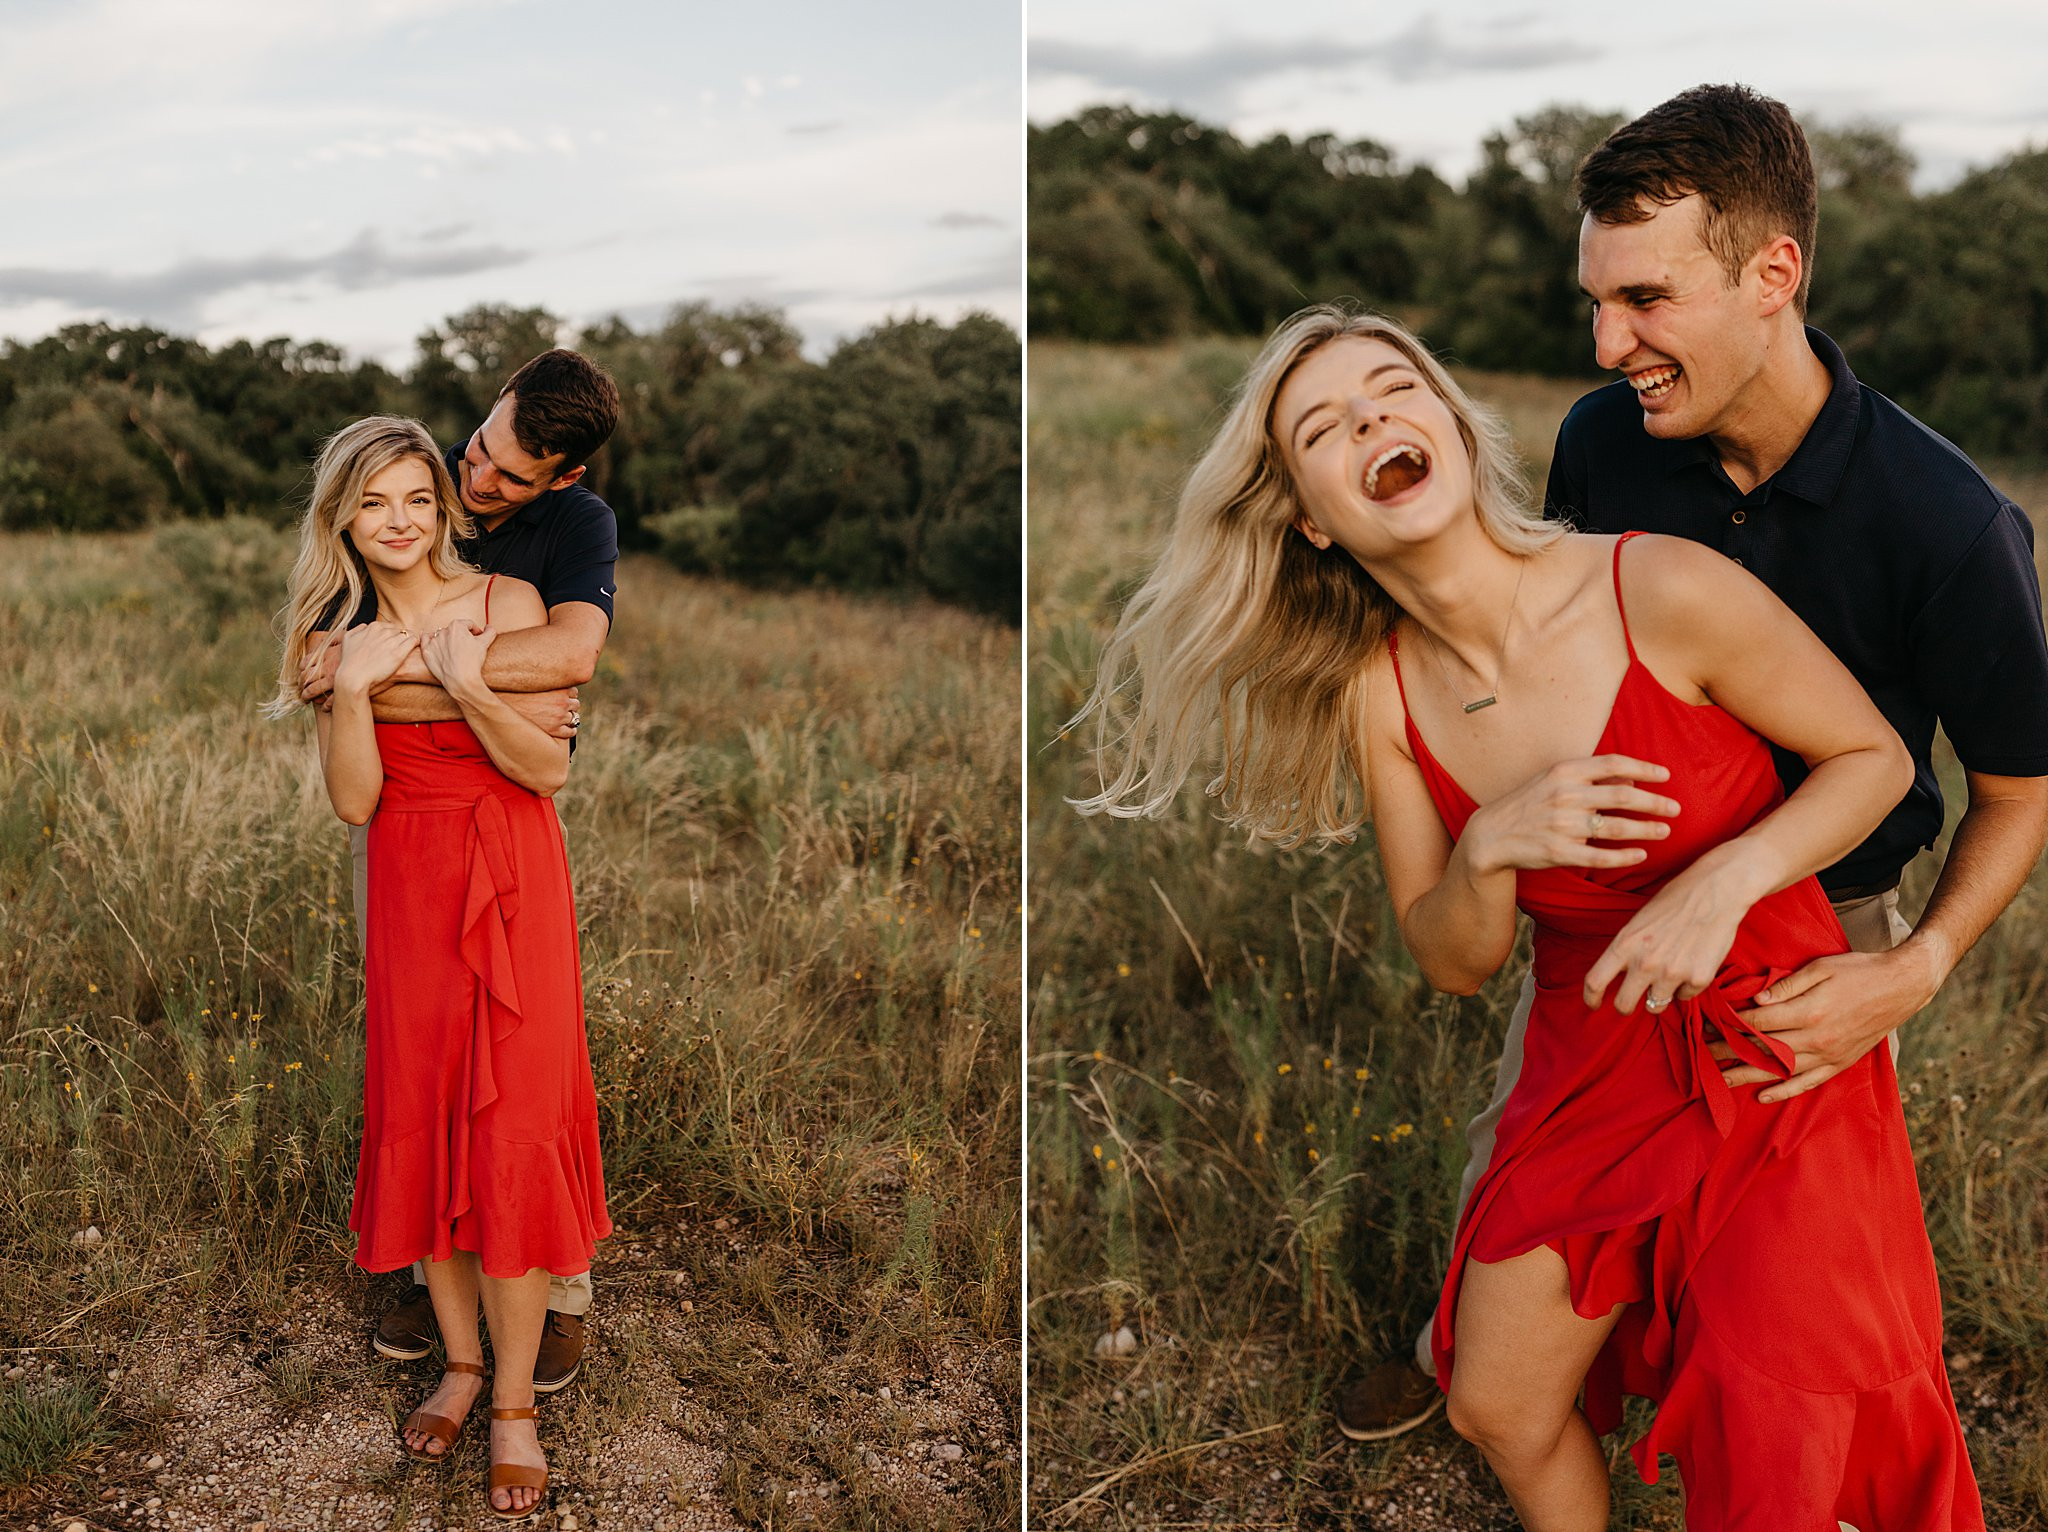 Wilderlove Co_Wedding Photographer_Dripping Springs Photography_Adventure Engagemenet_Rock Climbing Engagement_Hill Country Photographer_North Texas Photographer_0025.jpg